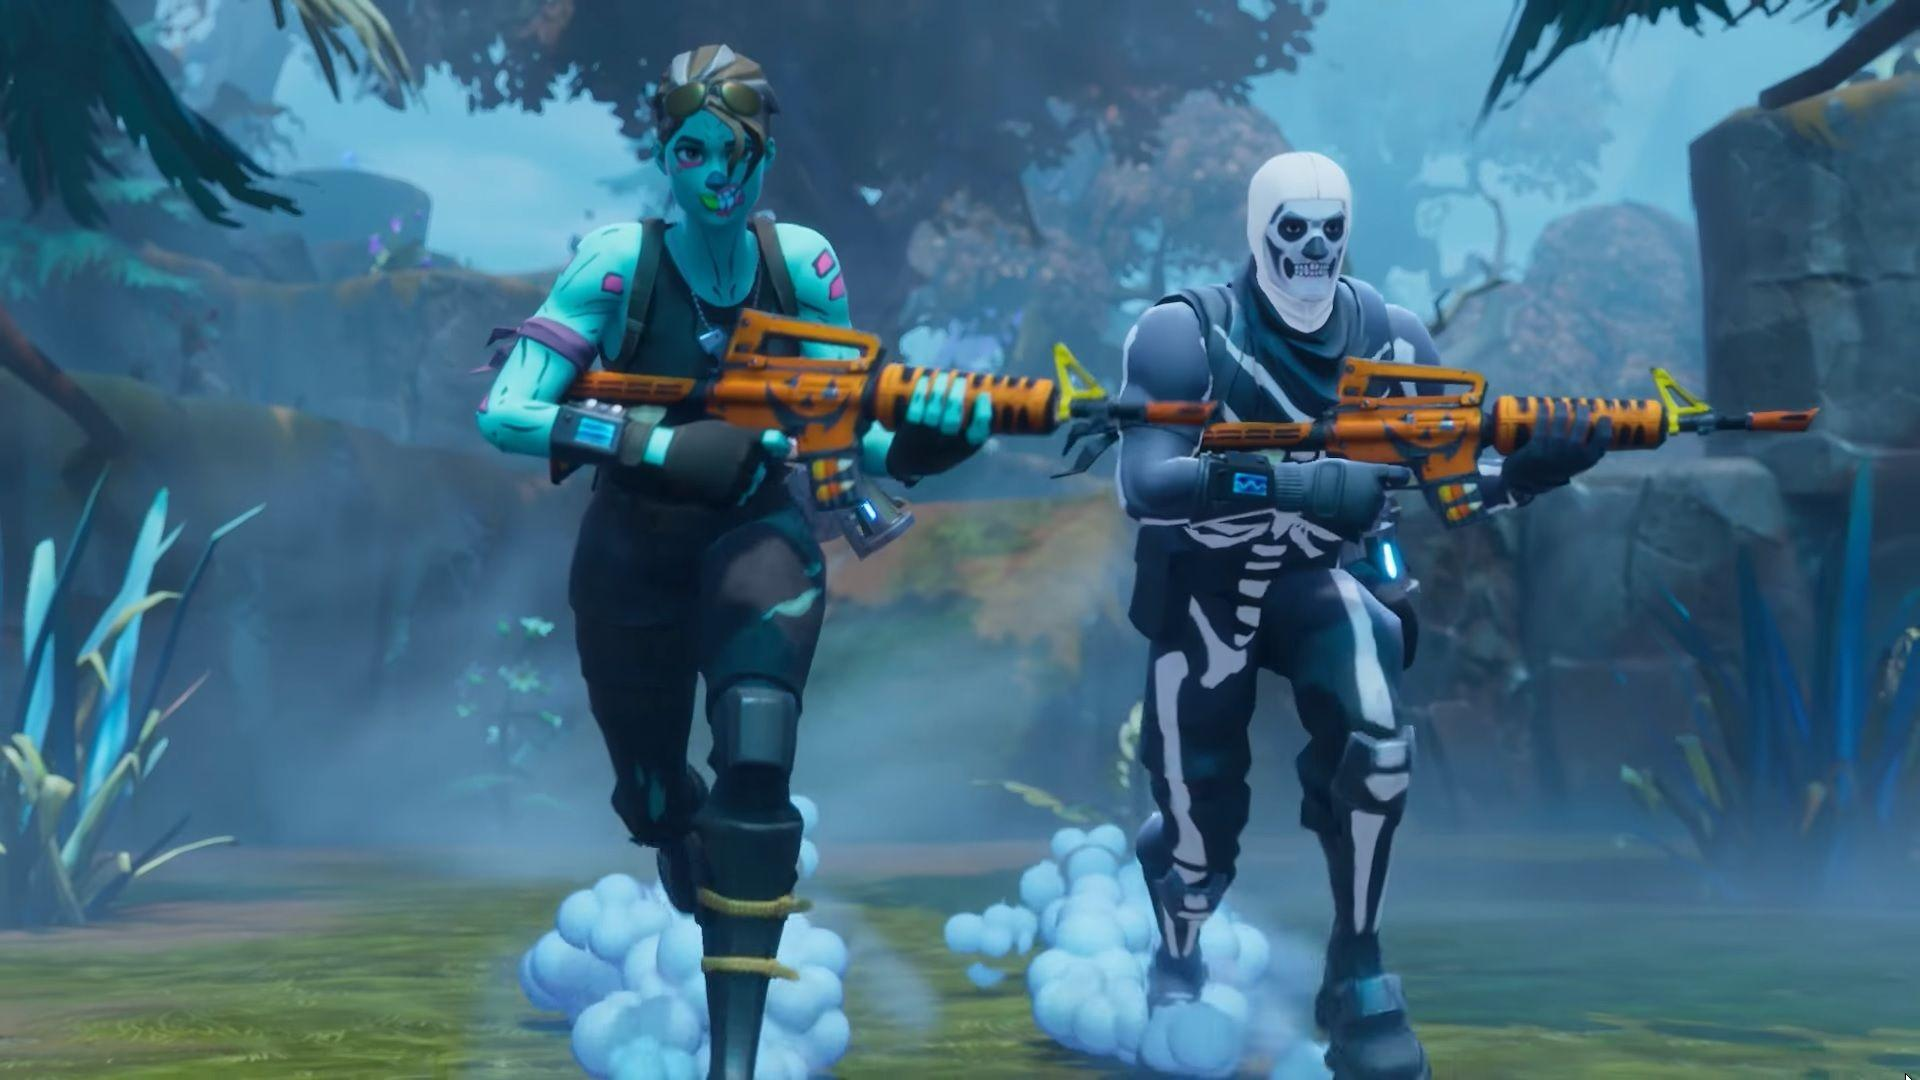 The Fortnitemares Update Sends Players to Hexylvania in Fortnite